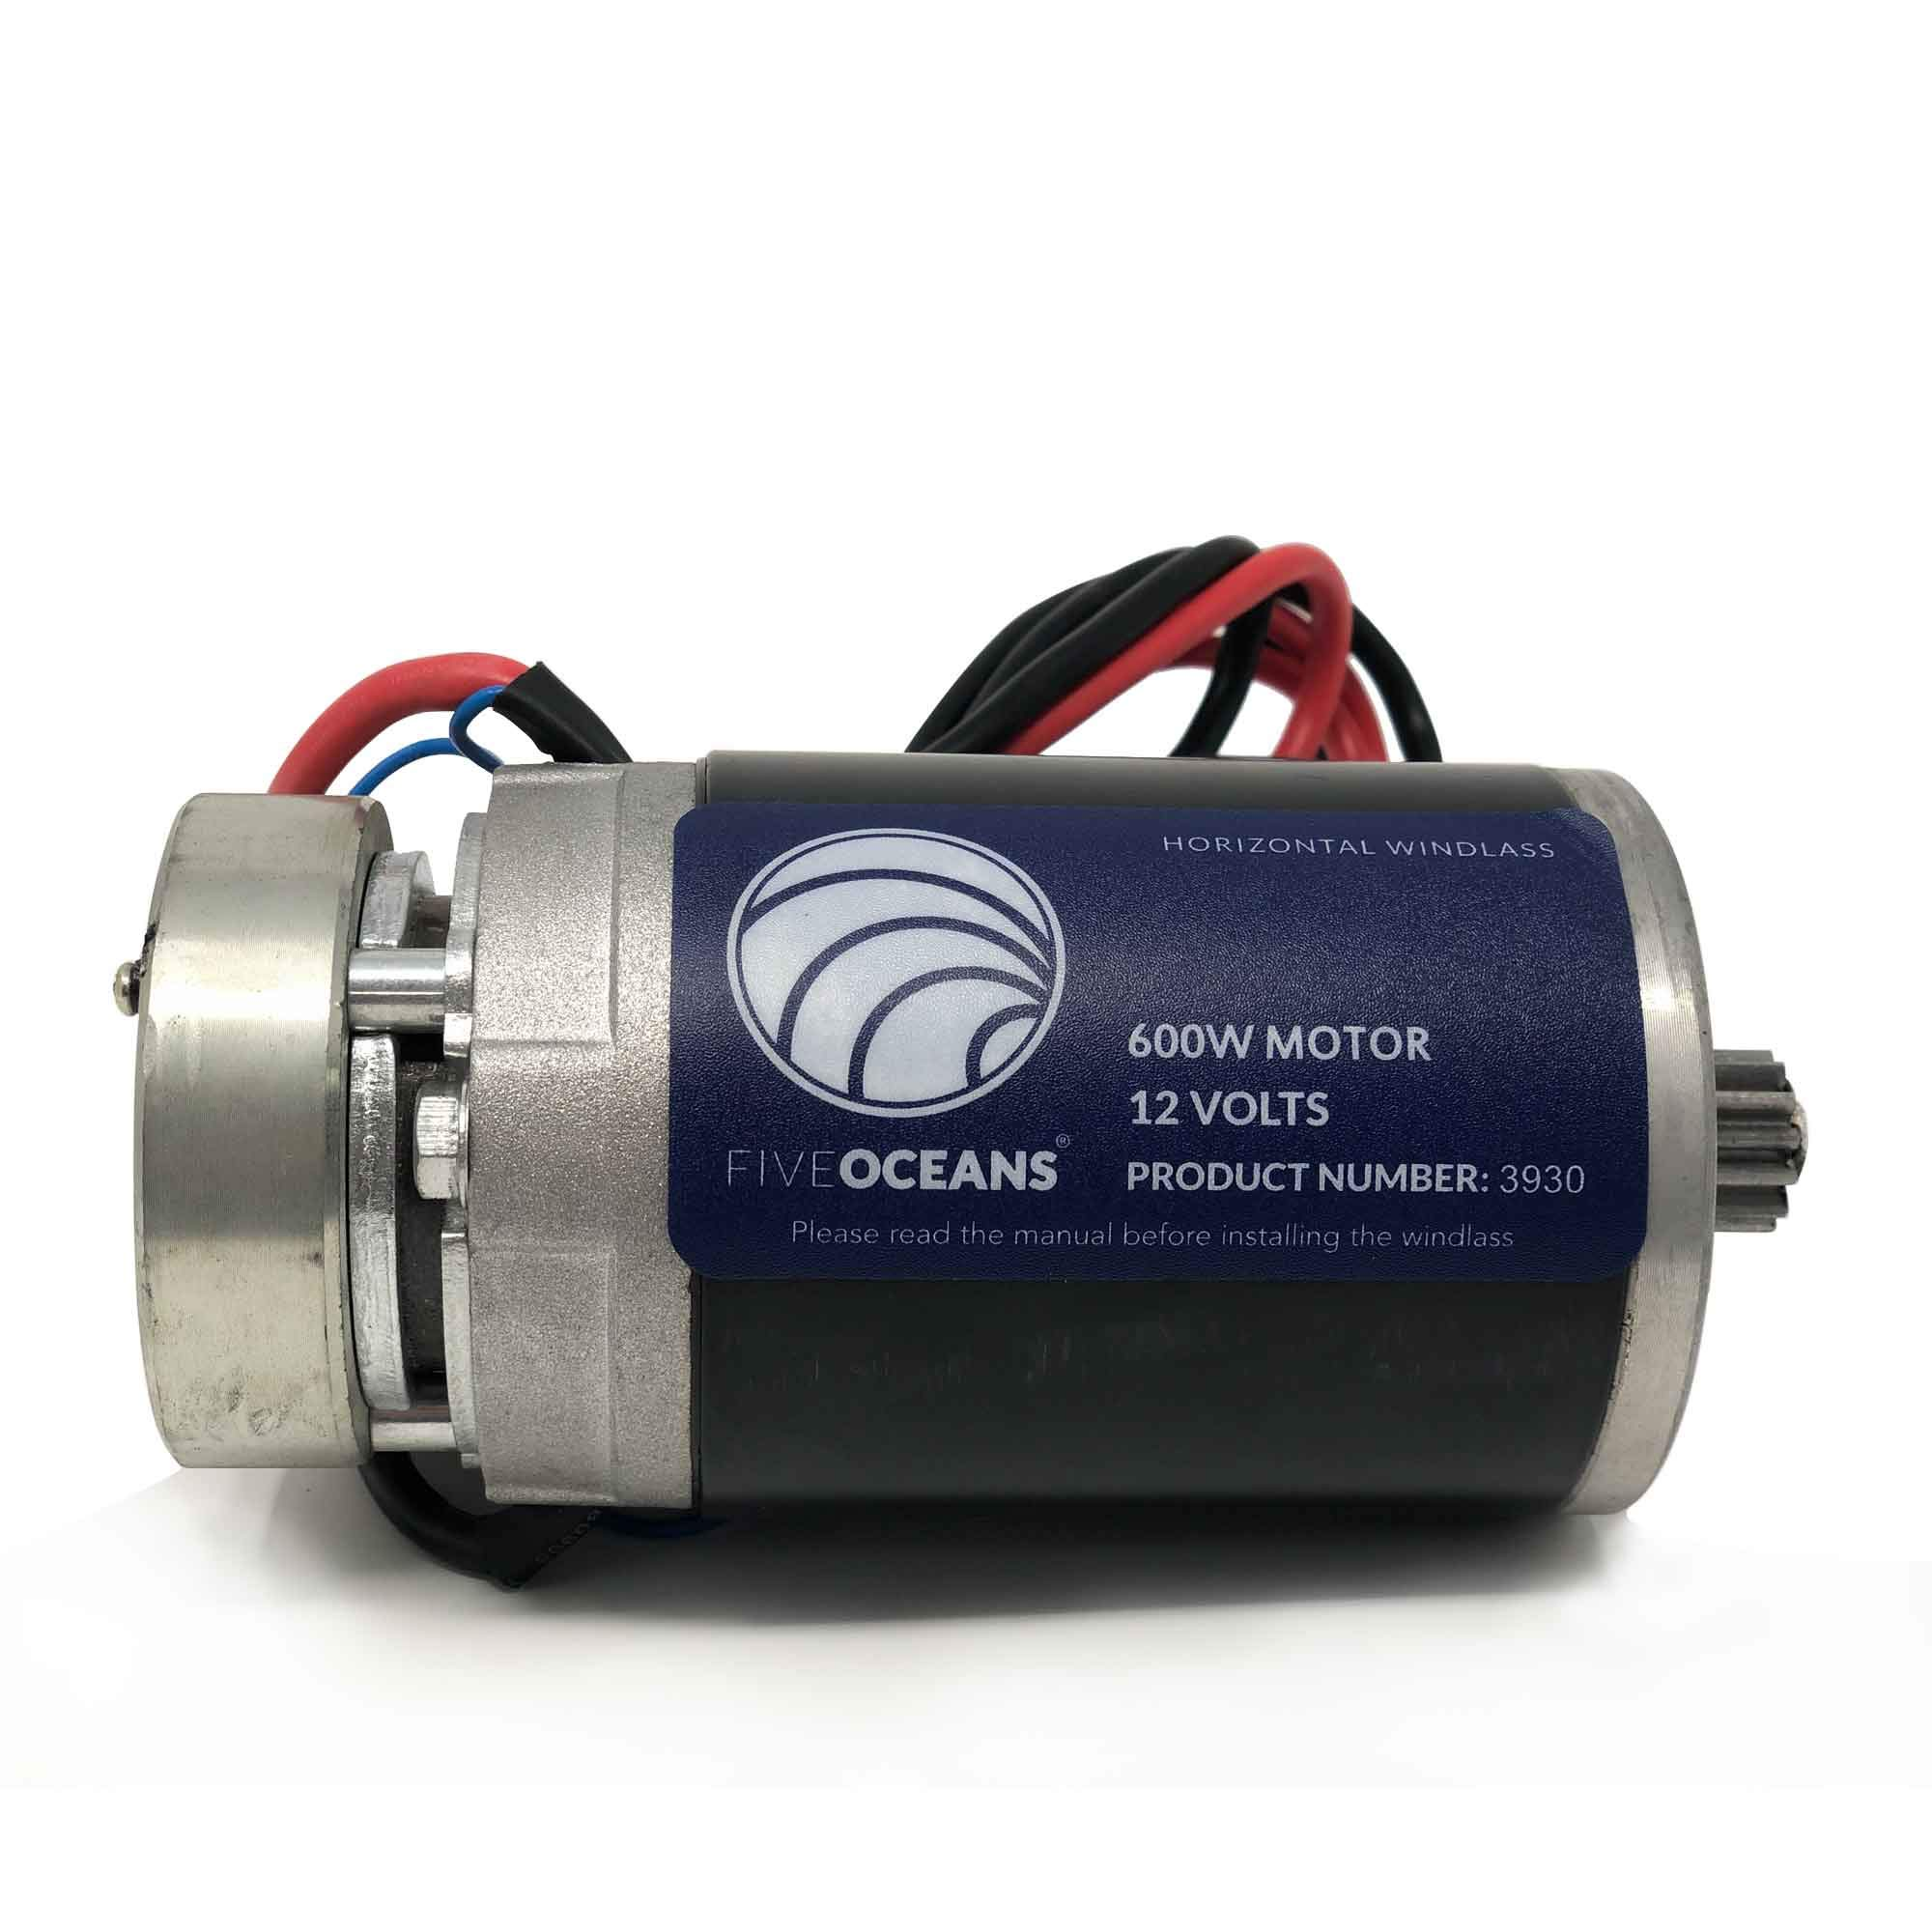 Five Oceans Replacement Motor for Atlantic 600 Horizontal Windlass 600W FO-4259 by Five Oceans